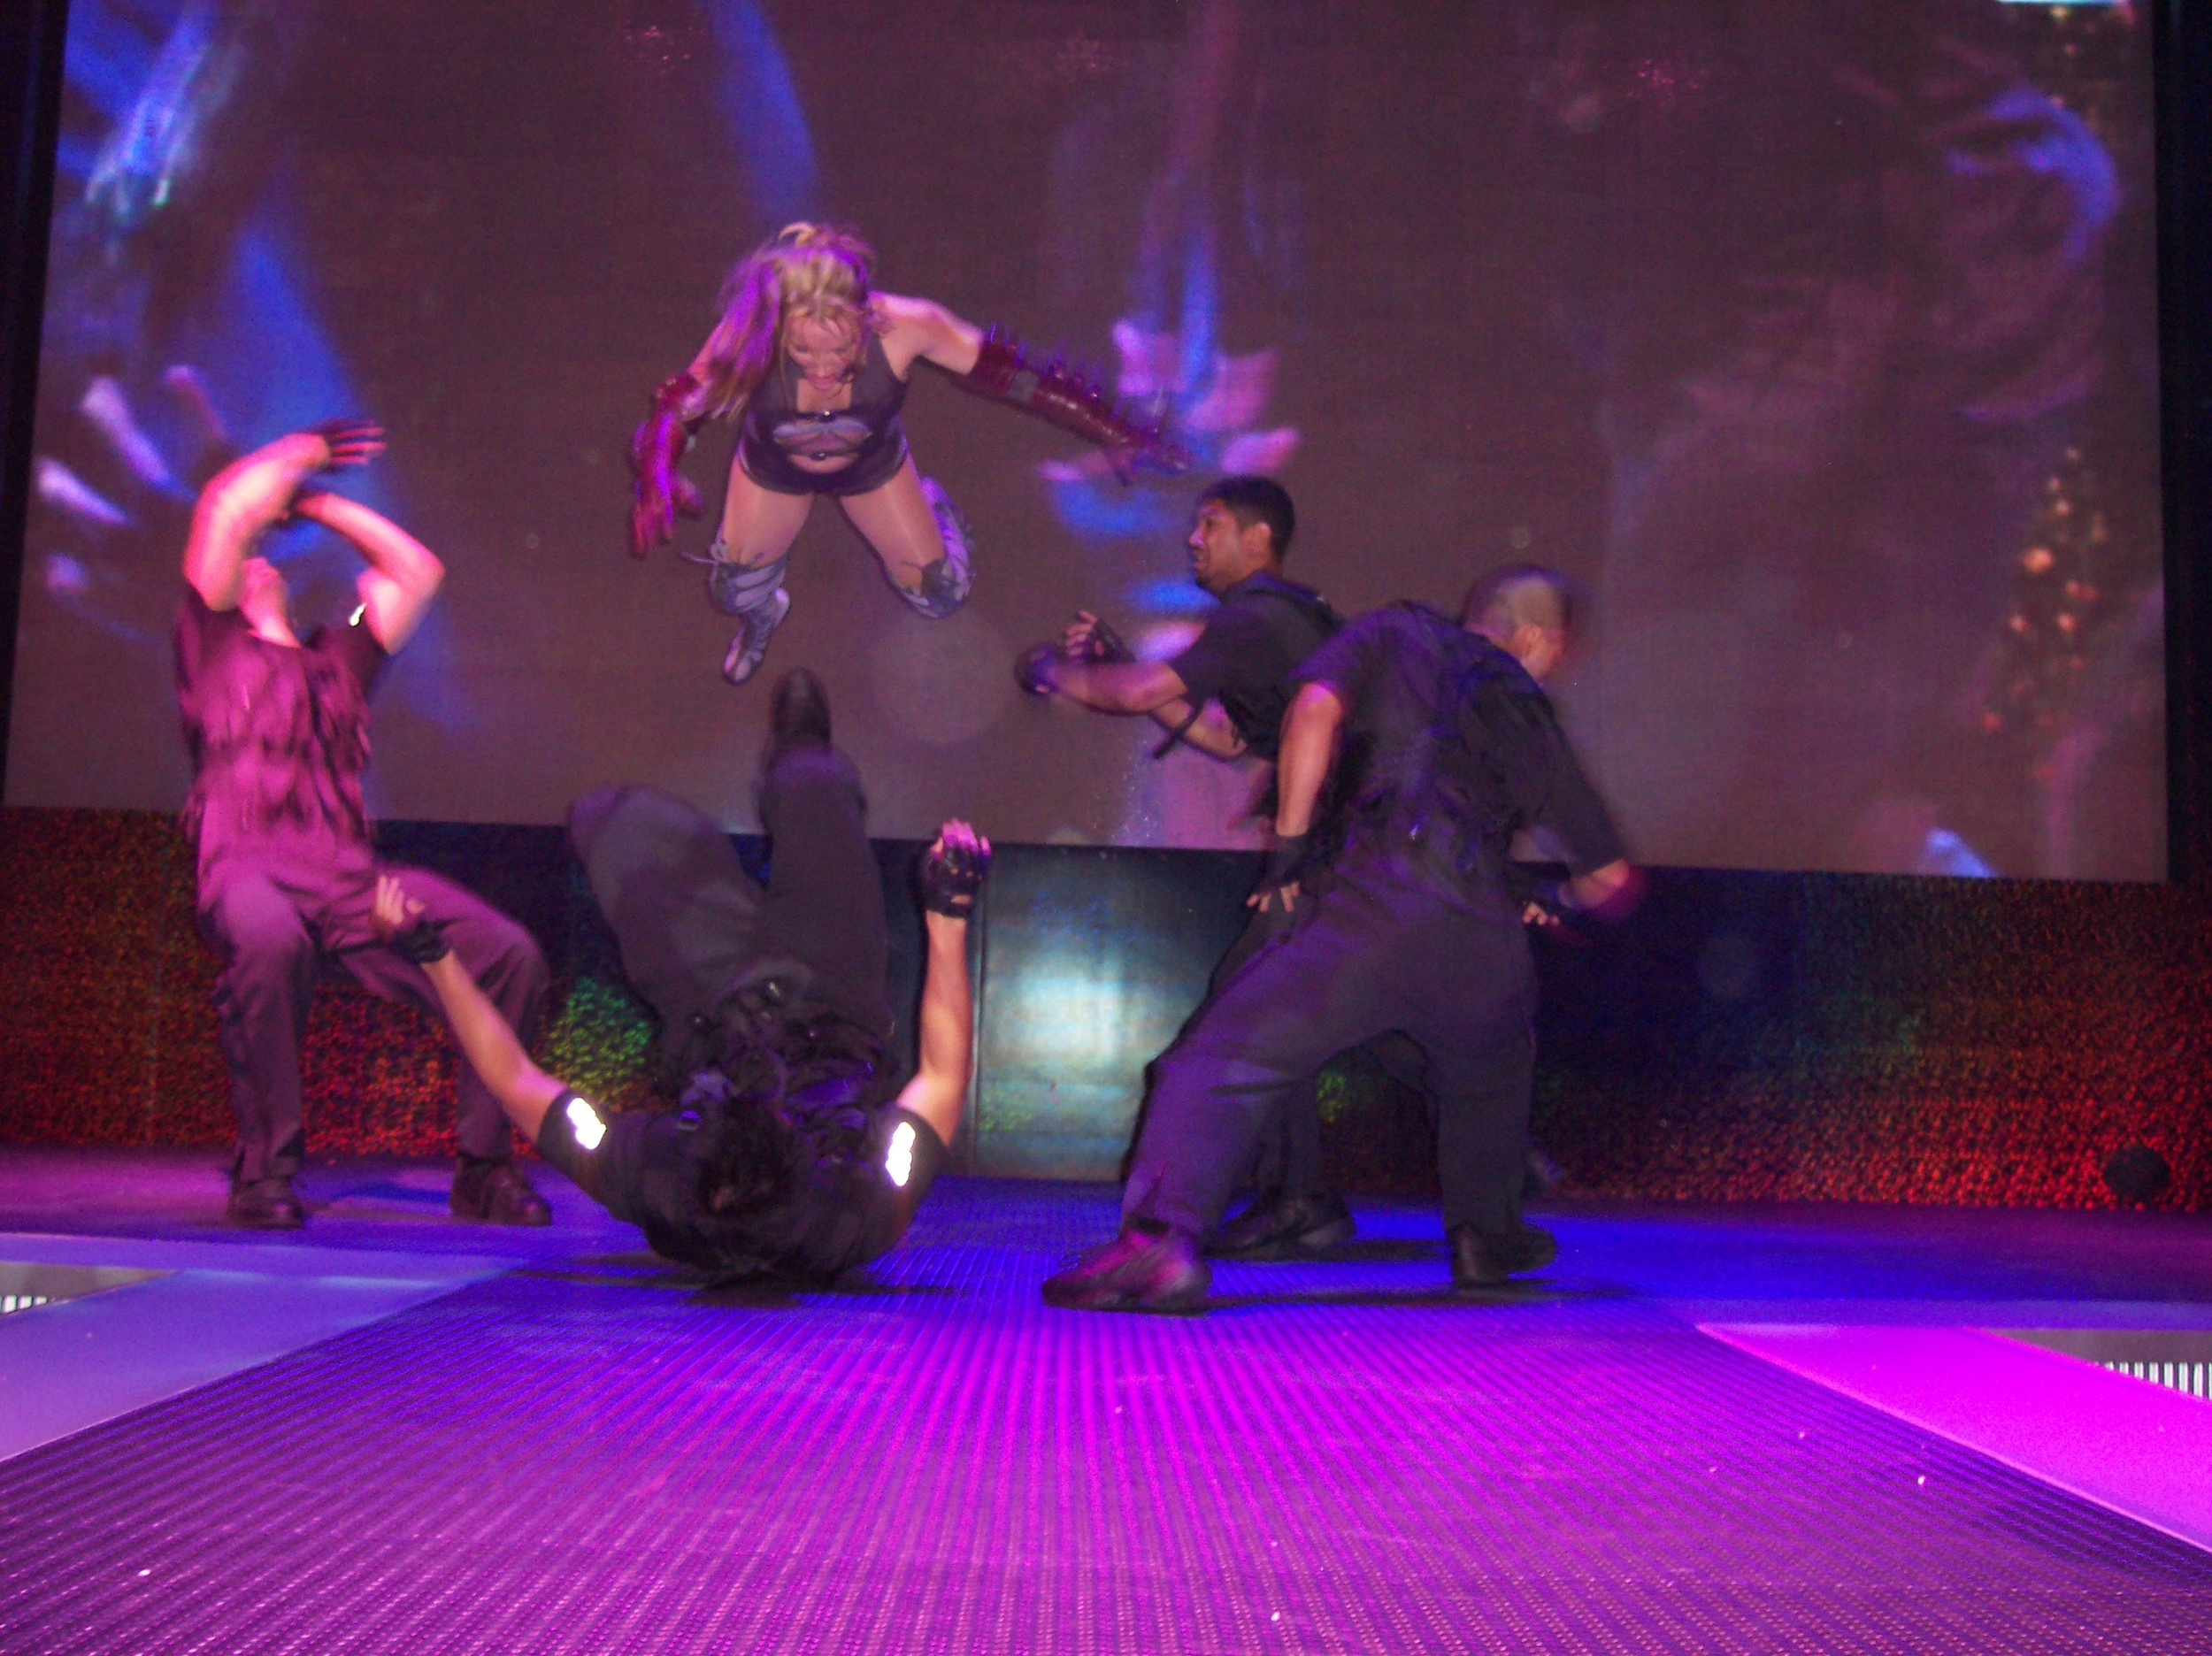 Styling Services for Trade Shows: E3, Namco aj Kapoor Productions